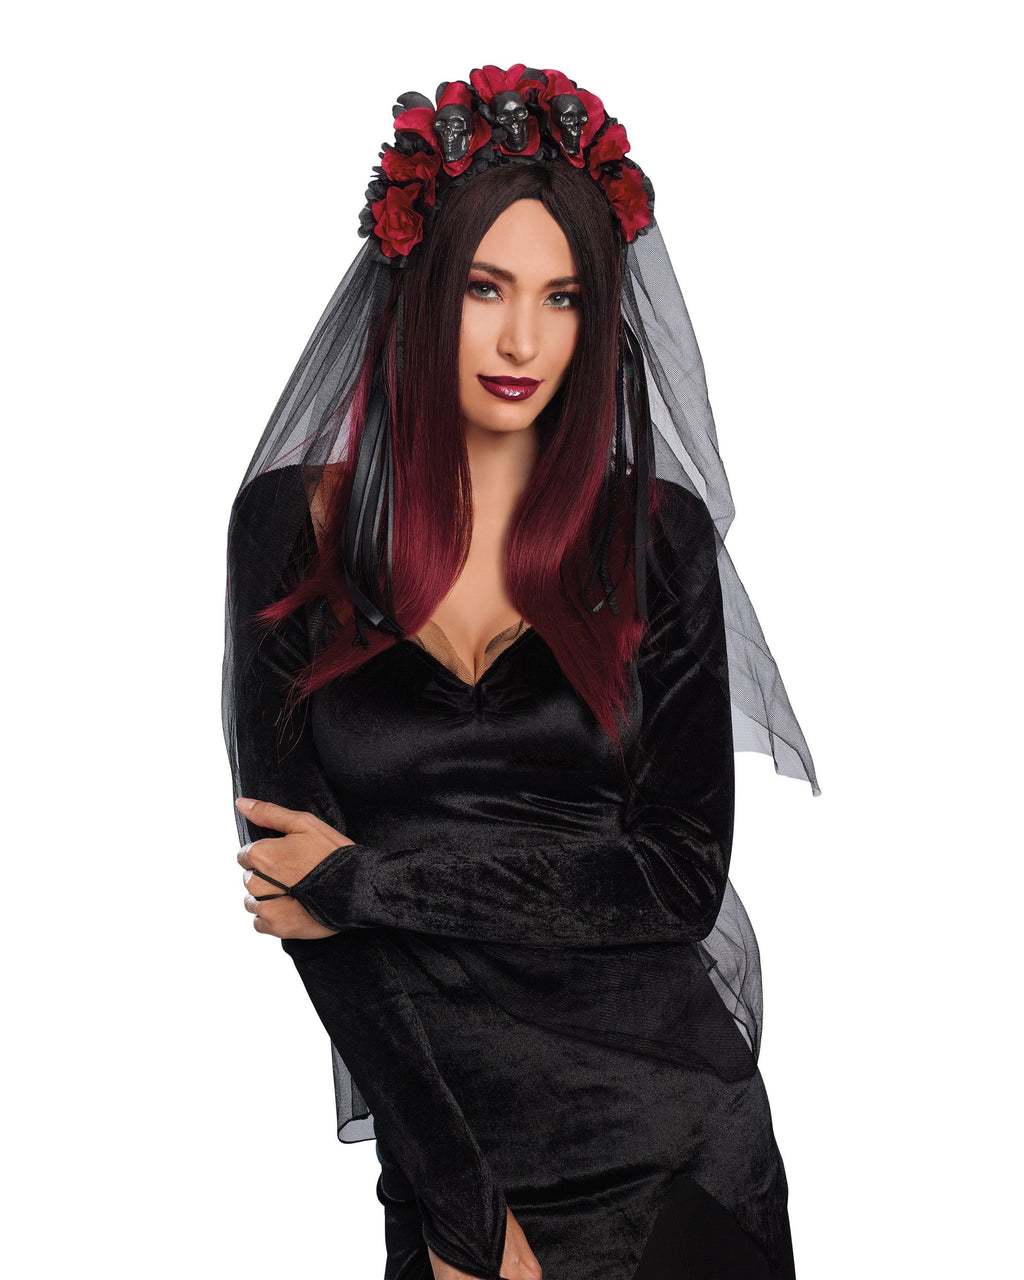 Gothic Flower and Skull Headpiece Headpiece Dreamgirl Costume